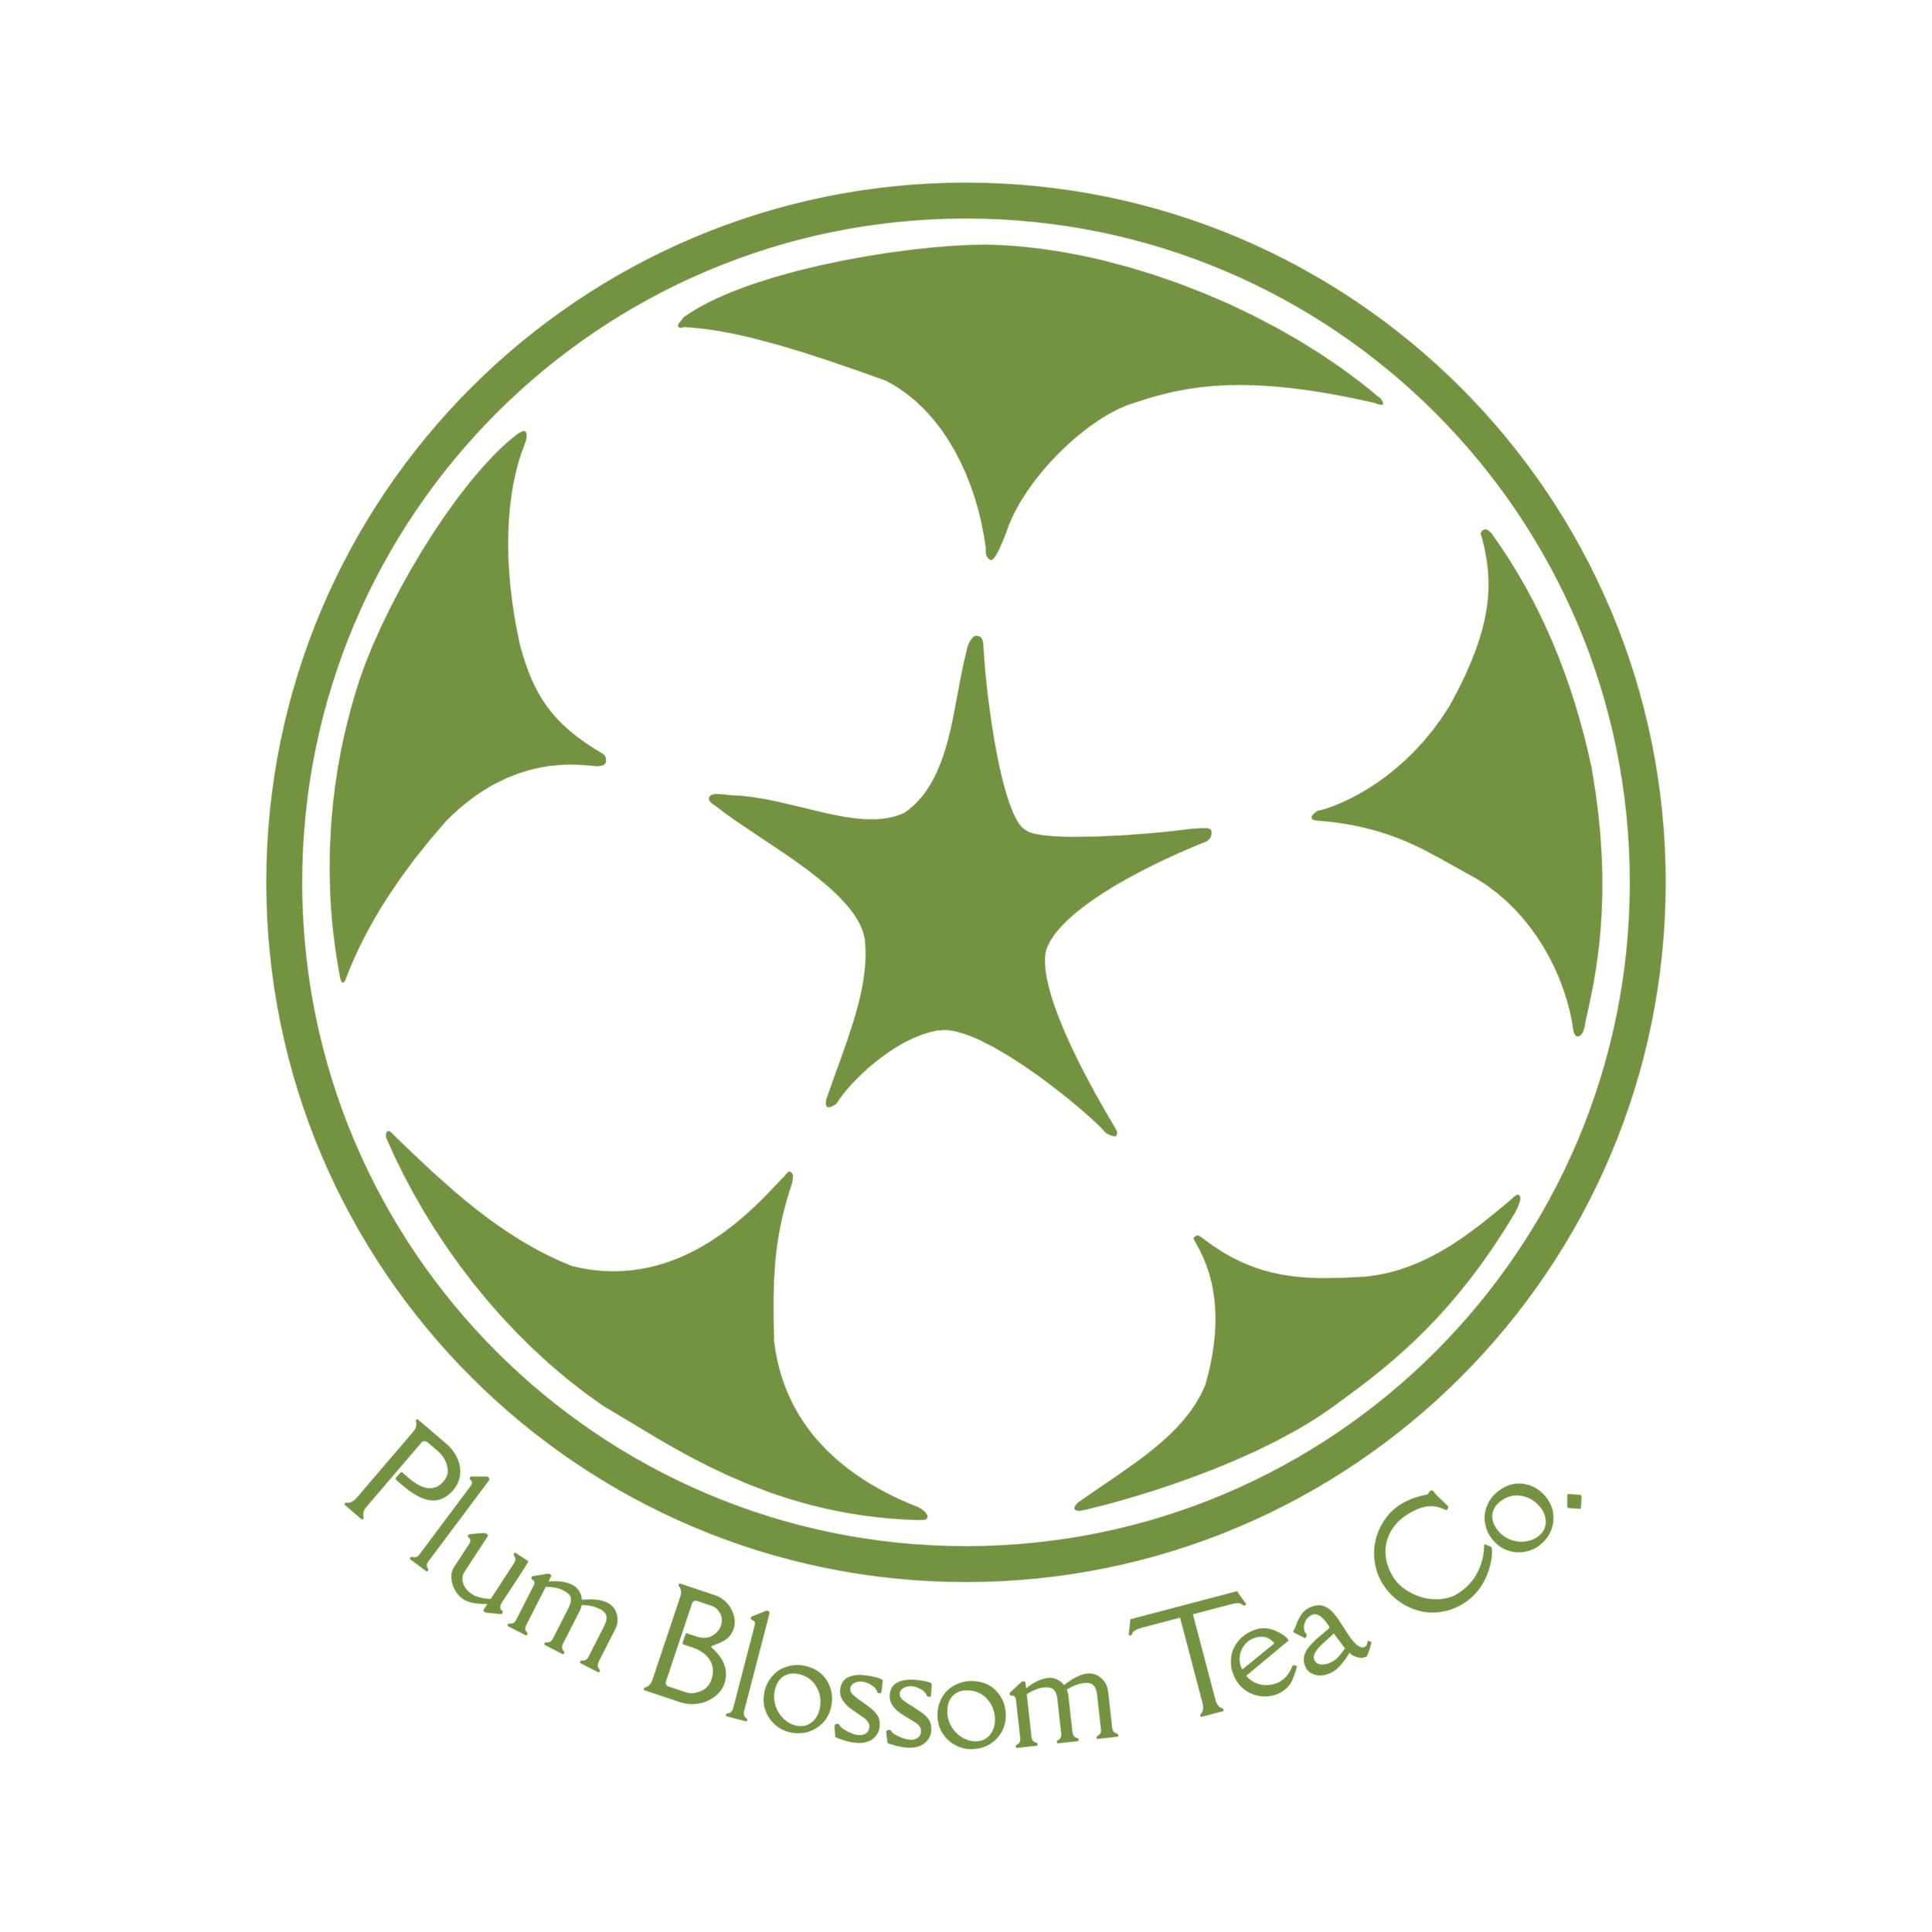 - Plum Blossom Tea Company tasting room and retail tea shop offers premium matcha, Asian teas, and teaware. Come learn how to properly whisk a bowl matcha or how to enjoy an aged pu'er. Visit Michelle in person or online to expand your tea awareness and to purchase your favorites.